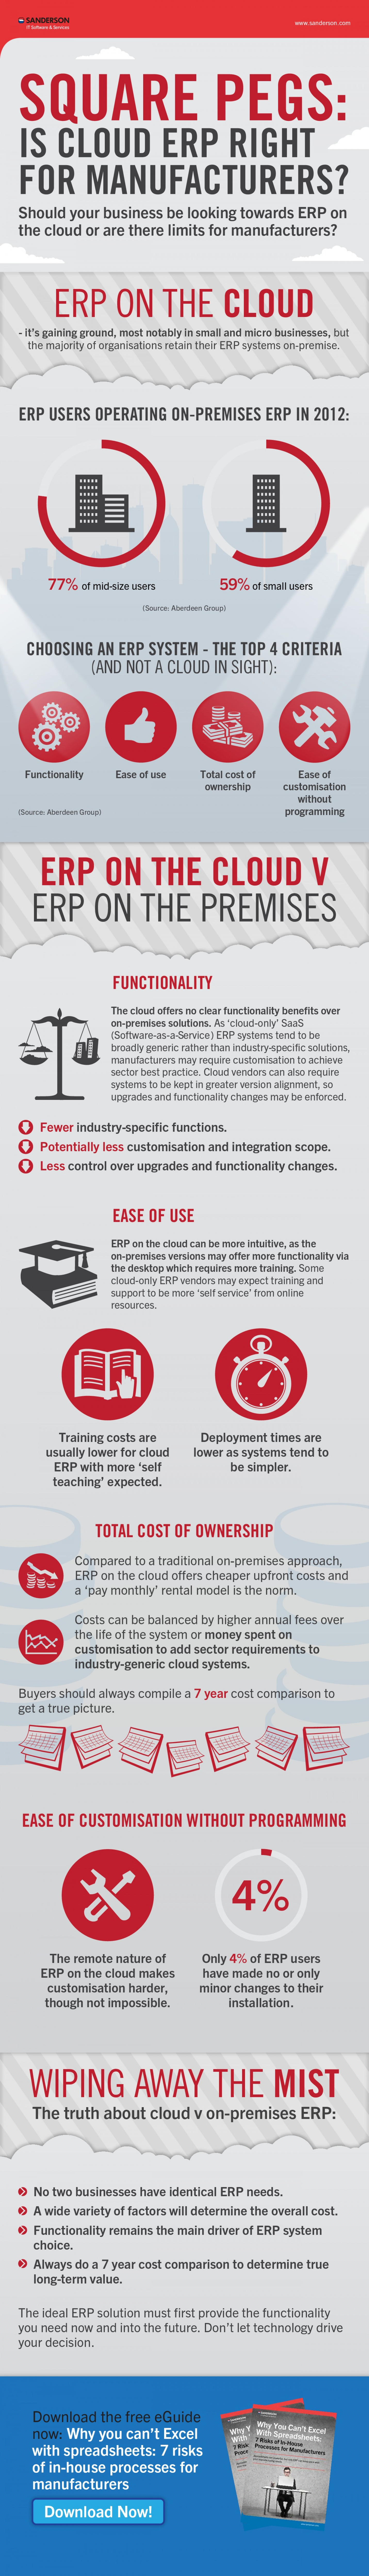 Square Pegs: is cloud ERP right for Manufacturers? Infographic